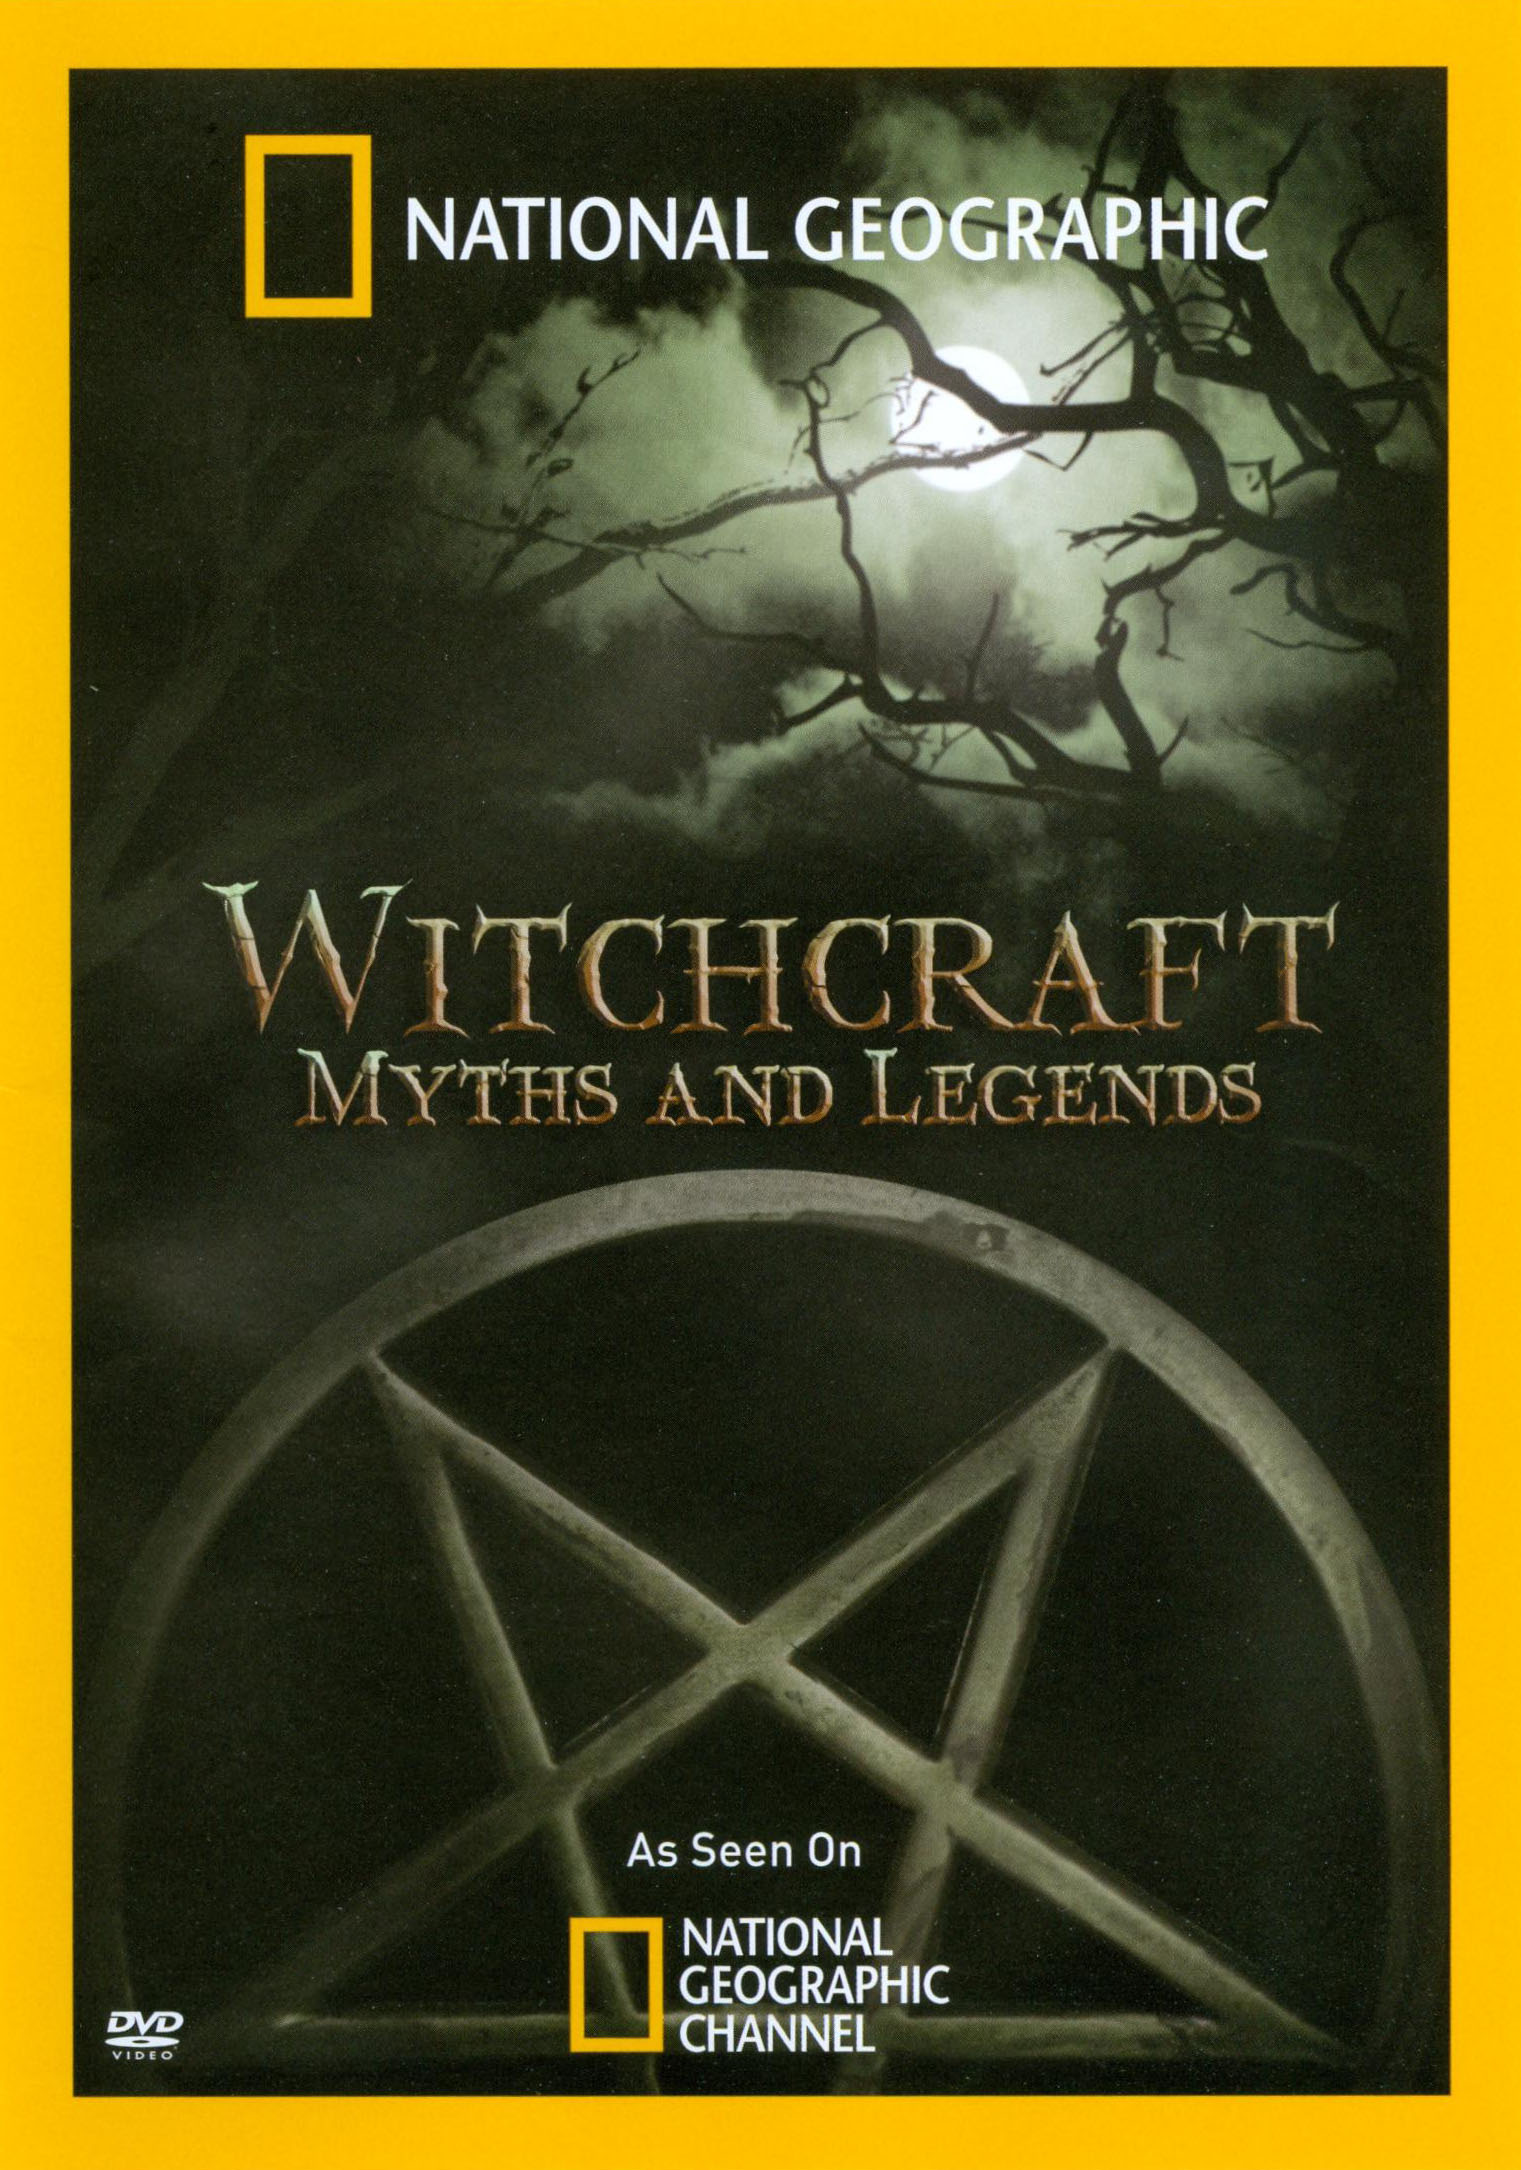 National Geographic: Witchcraft